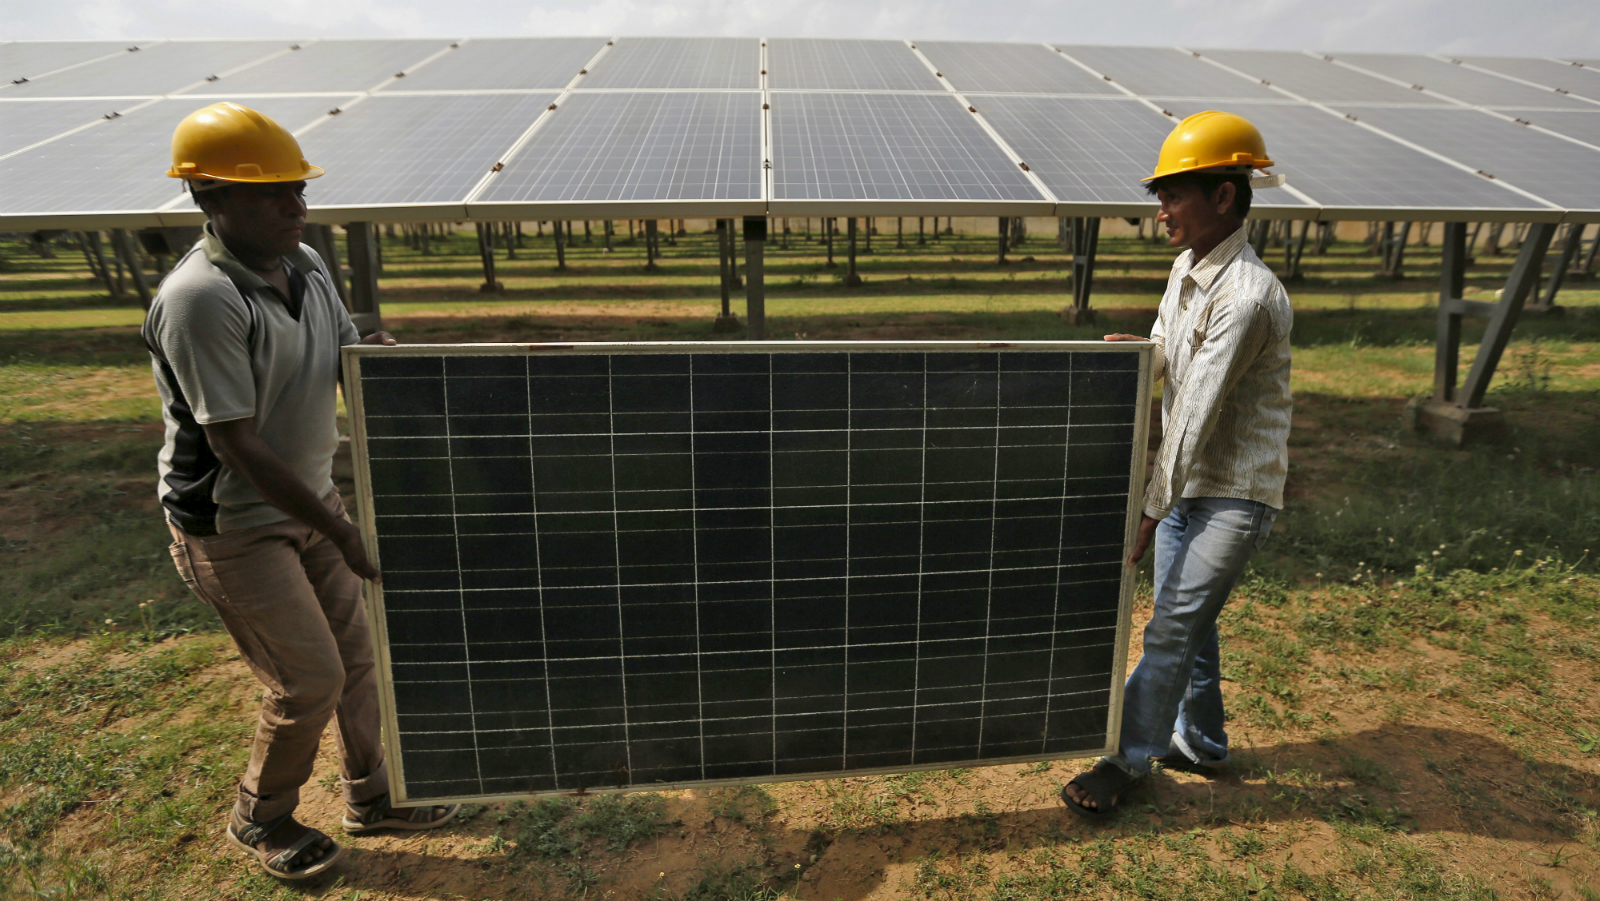 Workers carry a damaged photovoltaic panel inside a solar power plant in Gujarat, India, July 2, 2015. India's $100 billion push into solar energy over the next decade will be driven by foreign players as uncompetitive local manufacturers fall by the wayside, no longer protected by government restrictions on the sector.